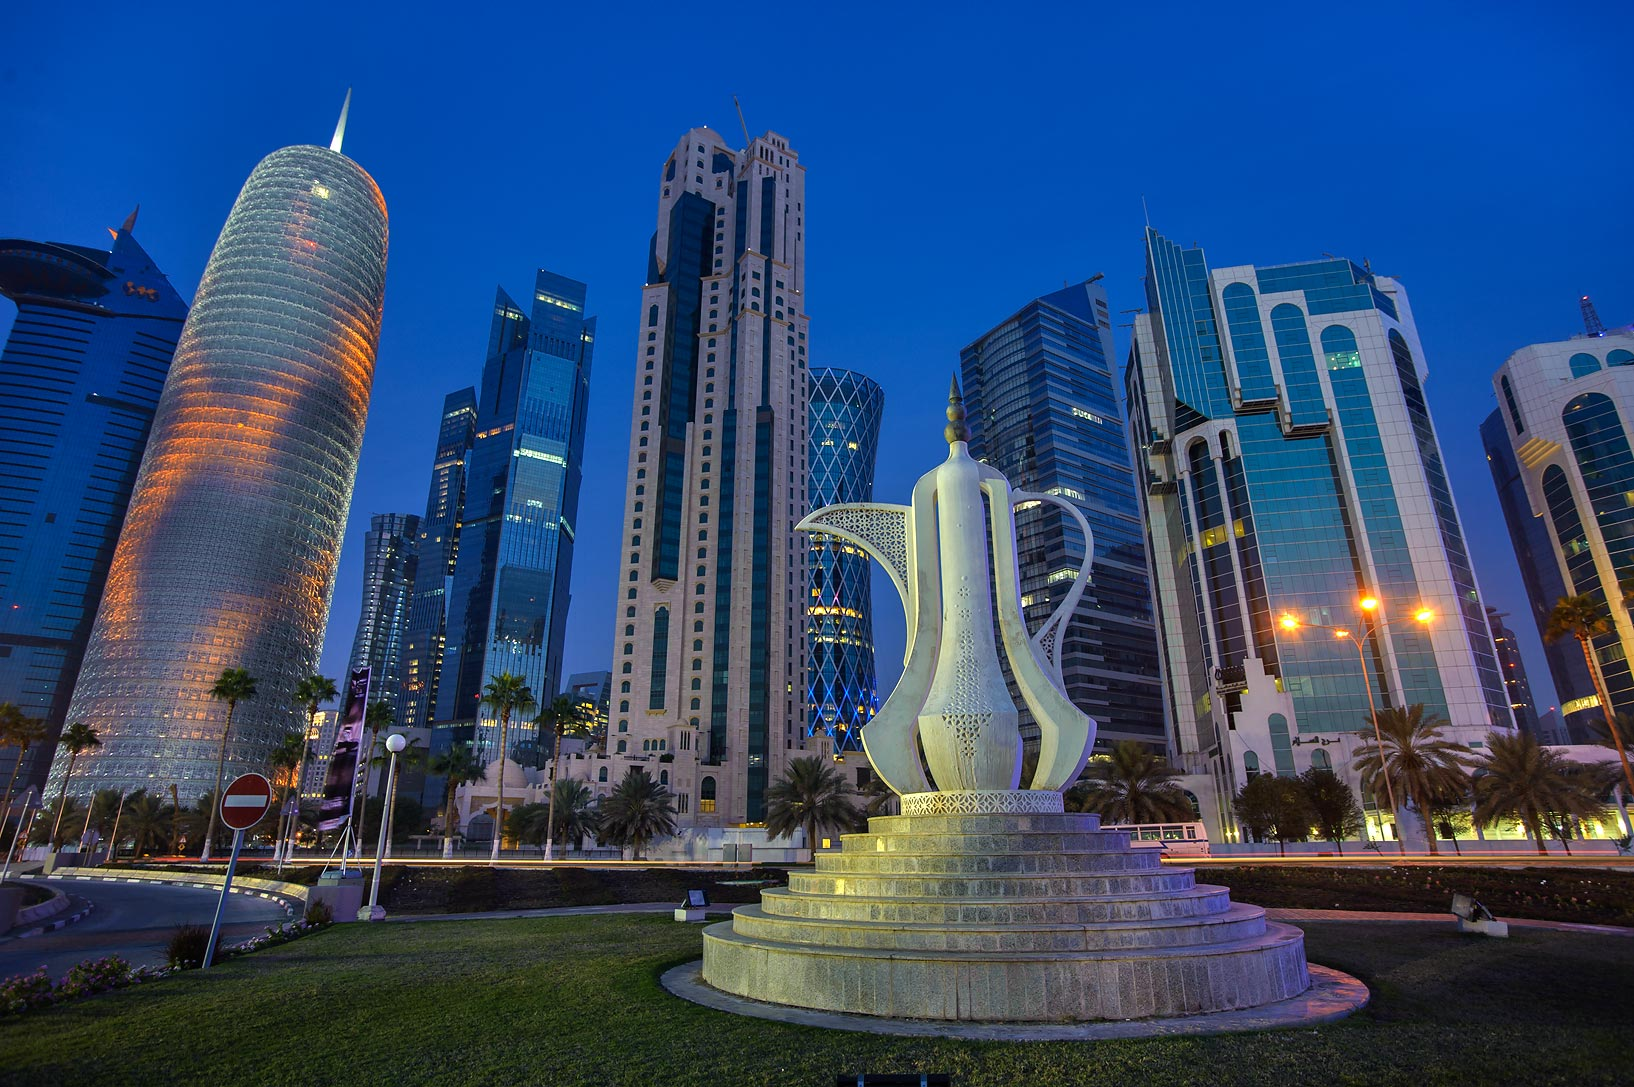 Giant teapot sculpture (dallah, or coffee pot...Sheraton Park at morning. Doha, Qatar